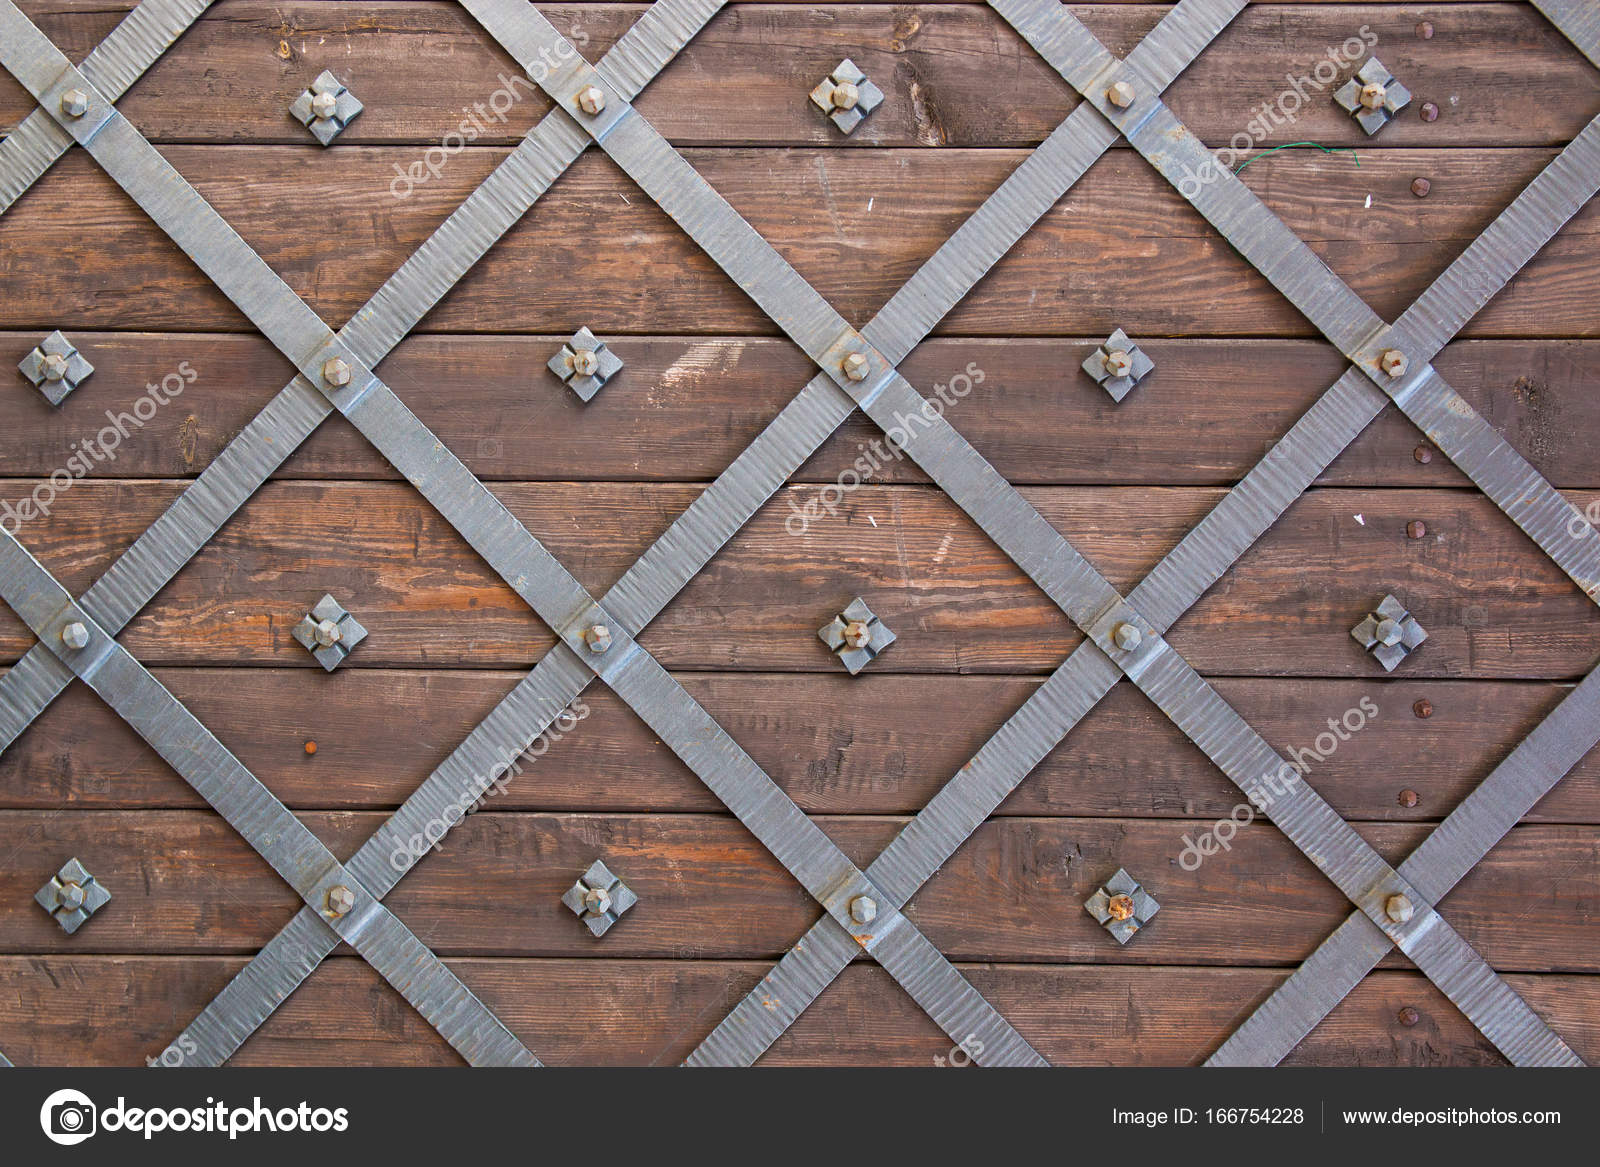 Old castle door texture with faded wood and metal u2014 Stock Photo & Old castle door texture with faded wood and metal u2014 Stock Photo ...